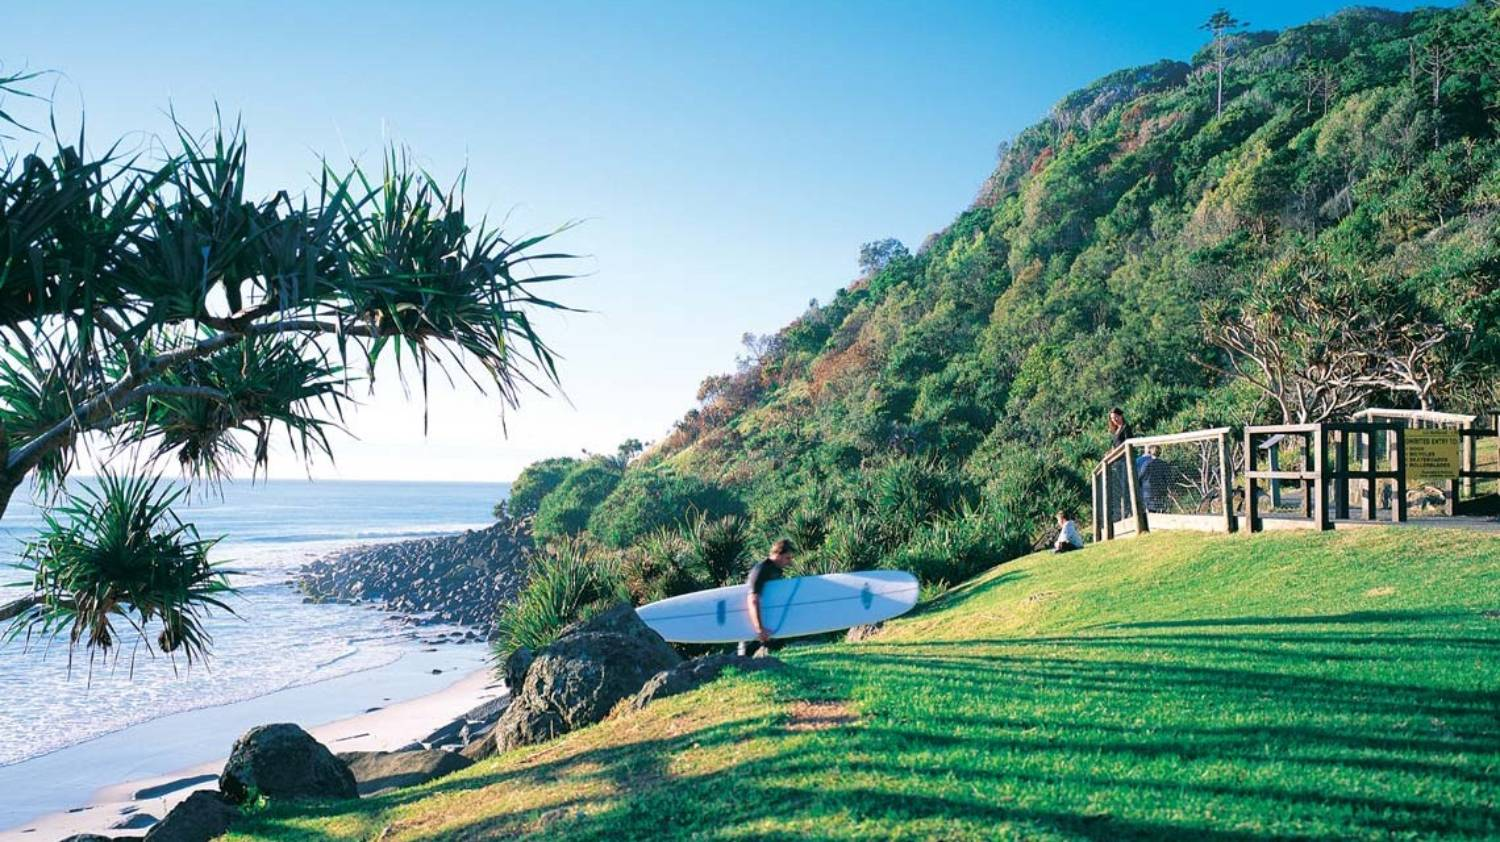 Burleigh Heads - Things To Do On The Gold Coast